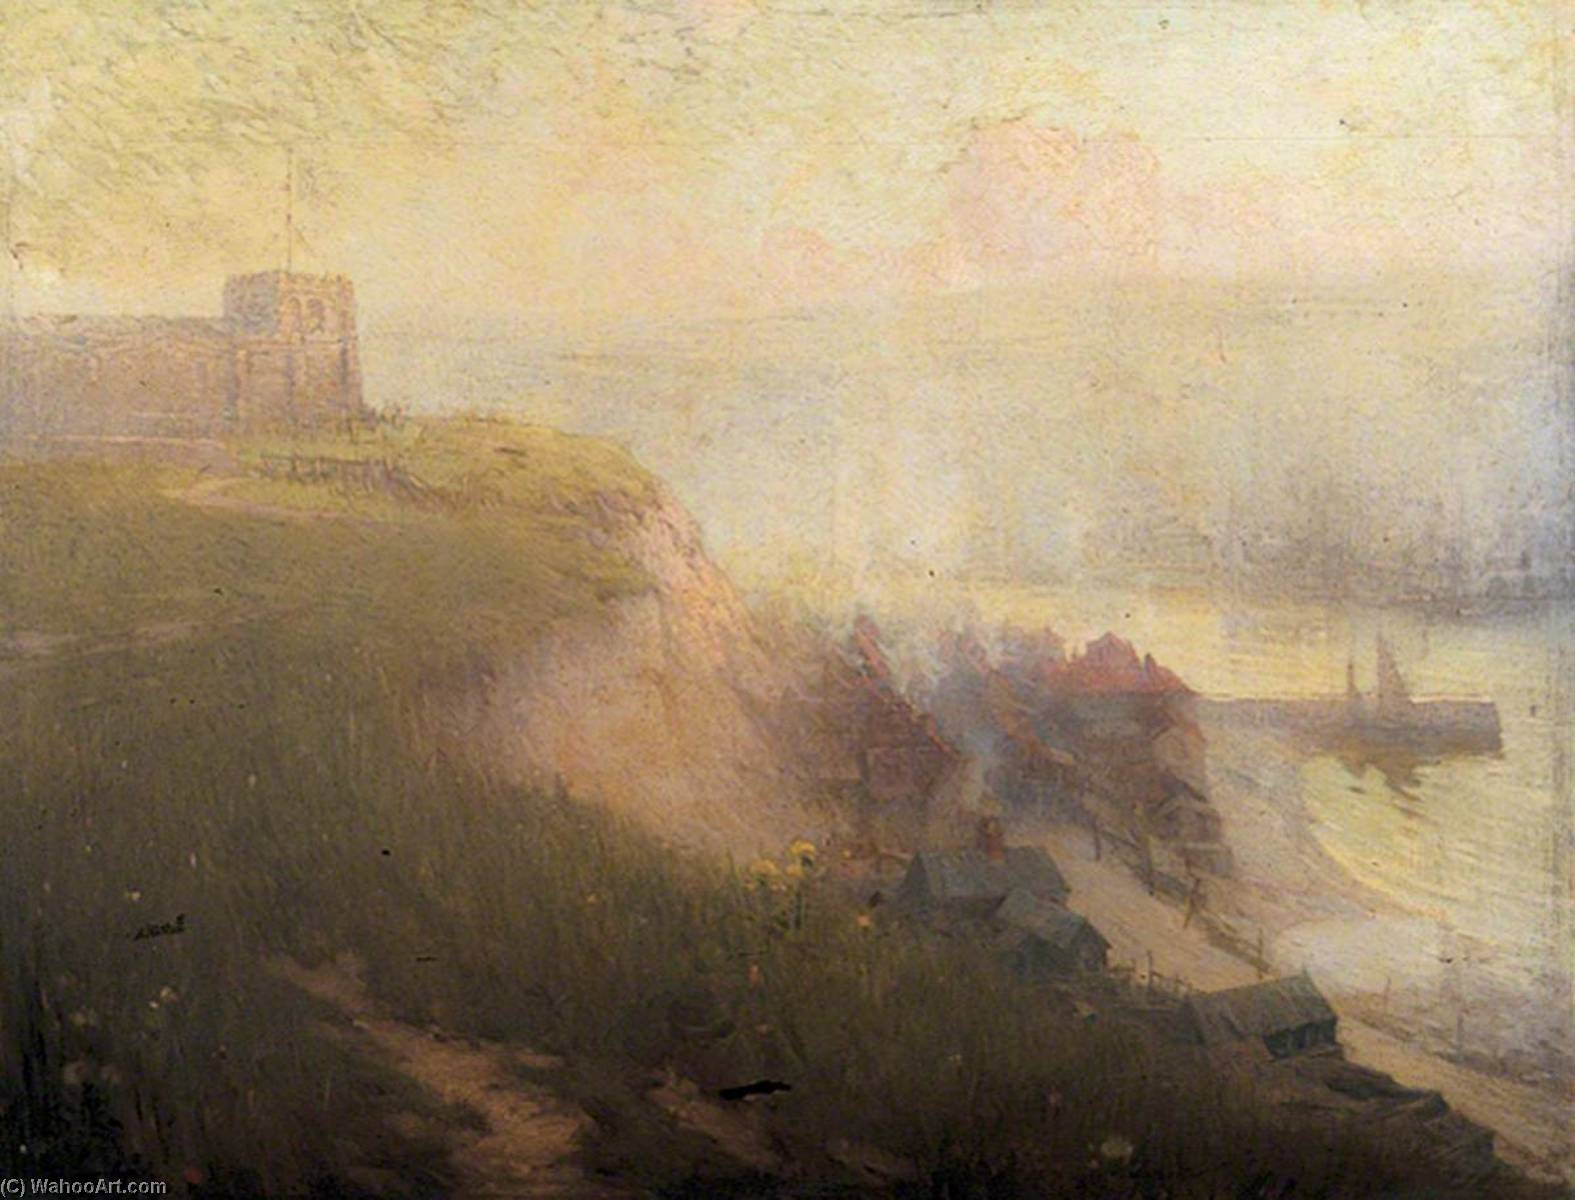 old whitby , yorkshire del norte, óleo sobre lienzo de Samuel Henry William Llewellyn